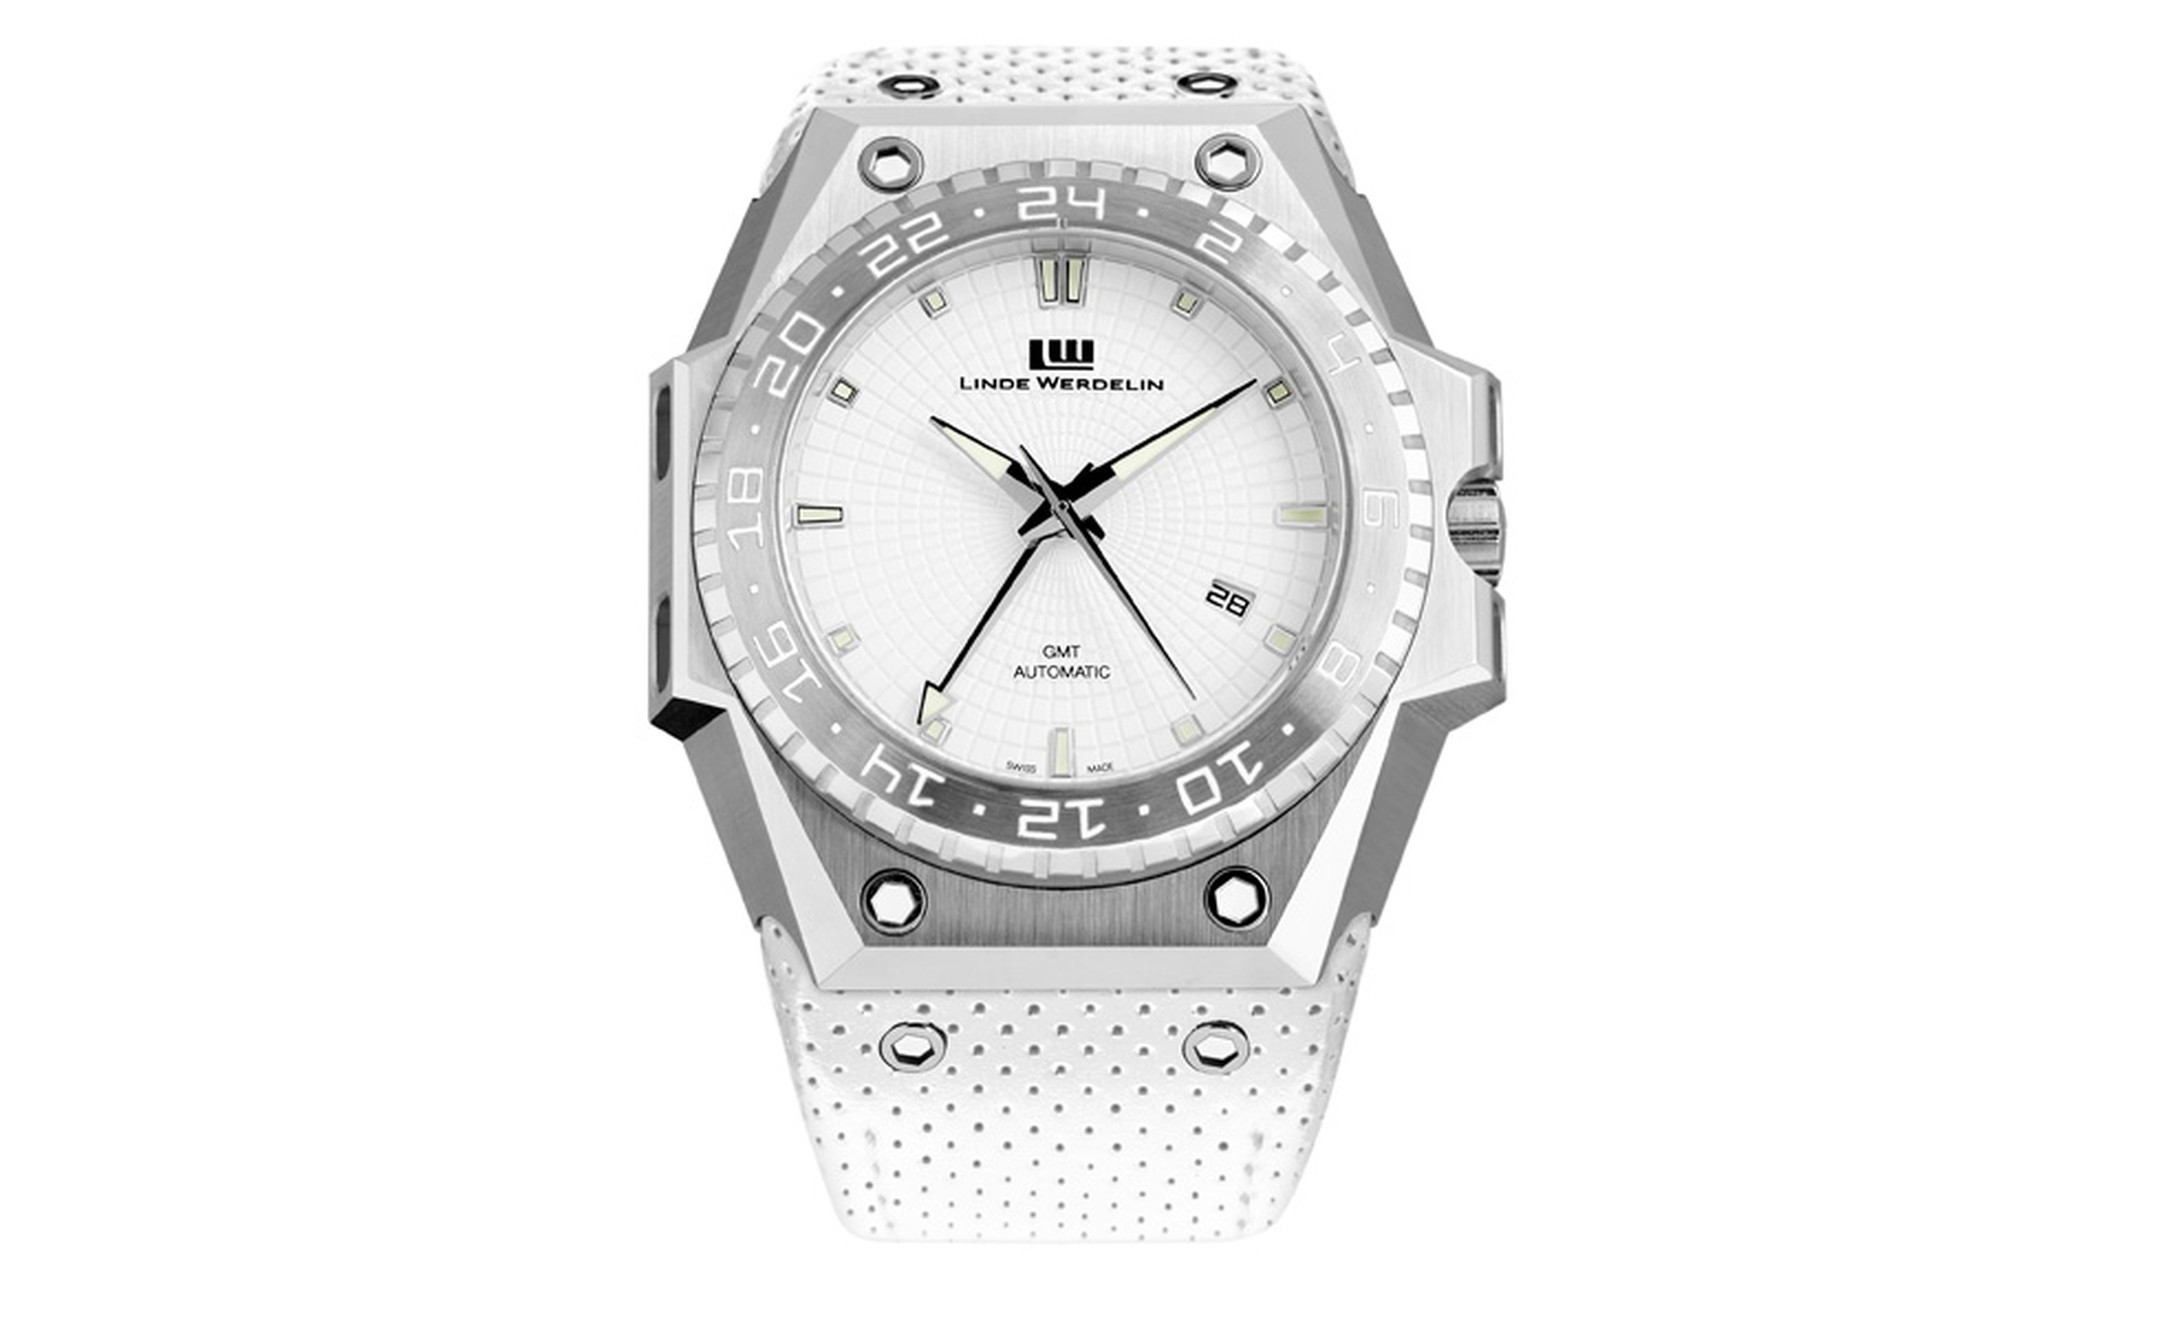 The White watch 4,680 euros and a limited edition of 51 pieces